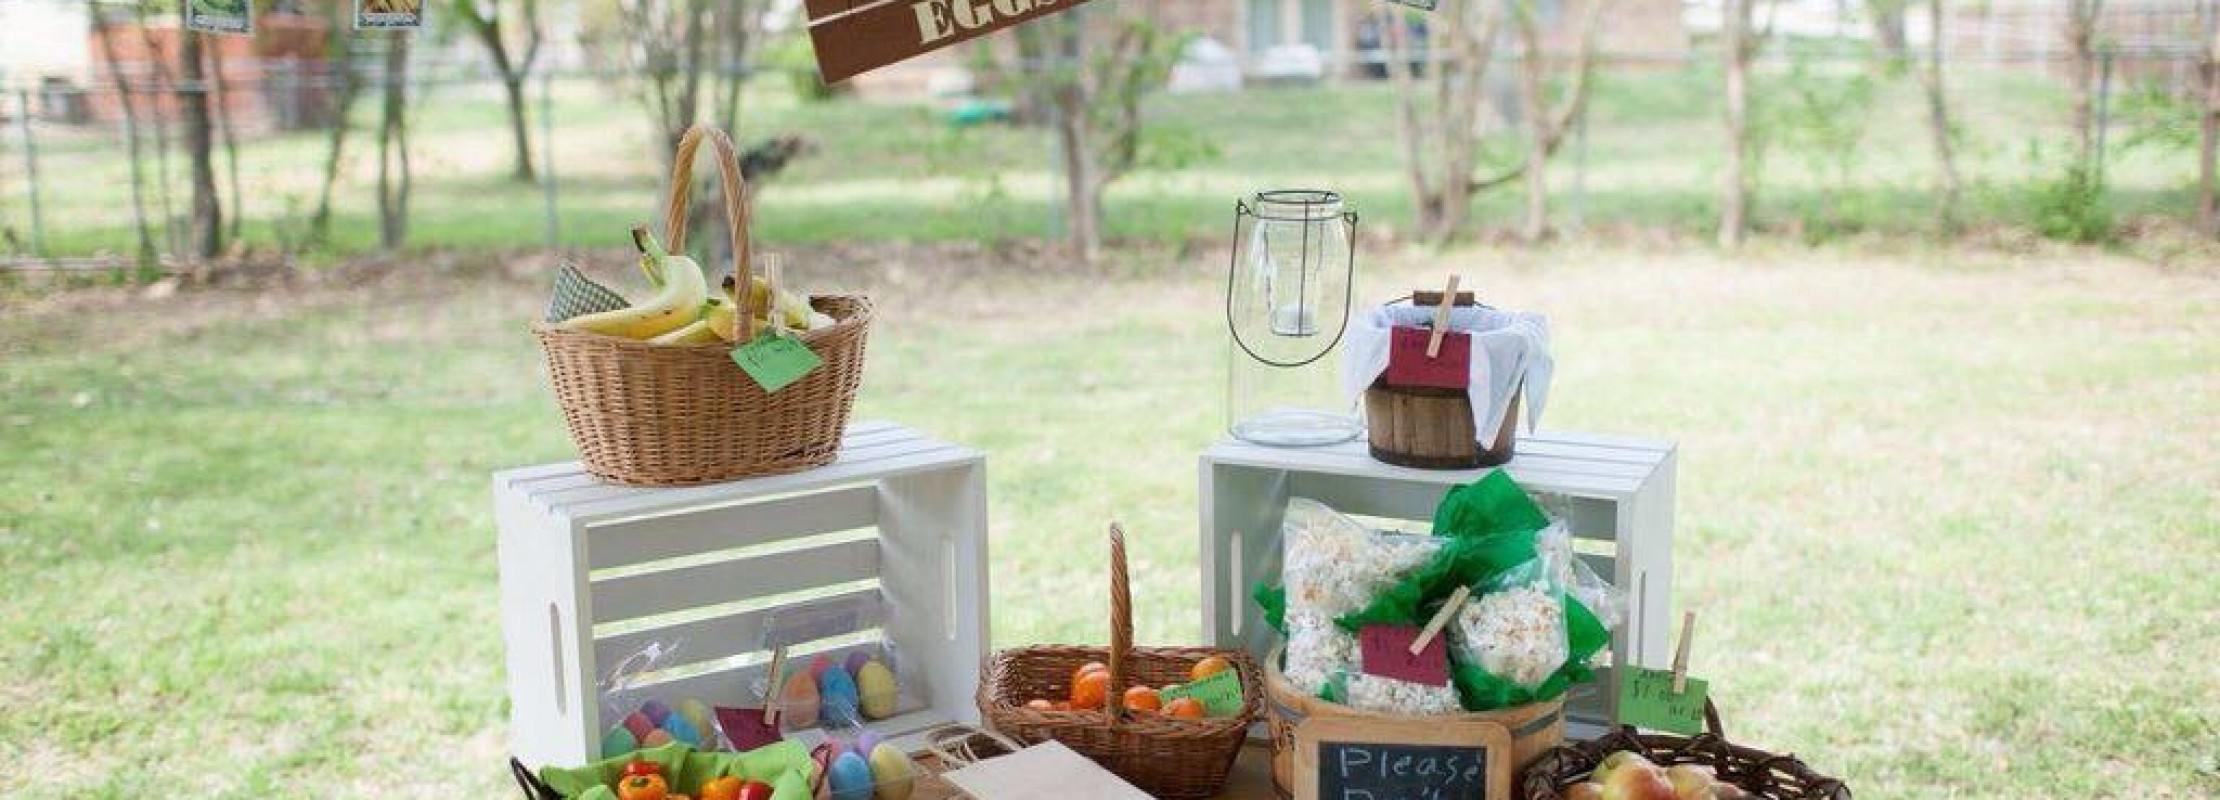 Farmer's Market Themed Birthday by Danielle Riojas